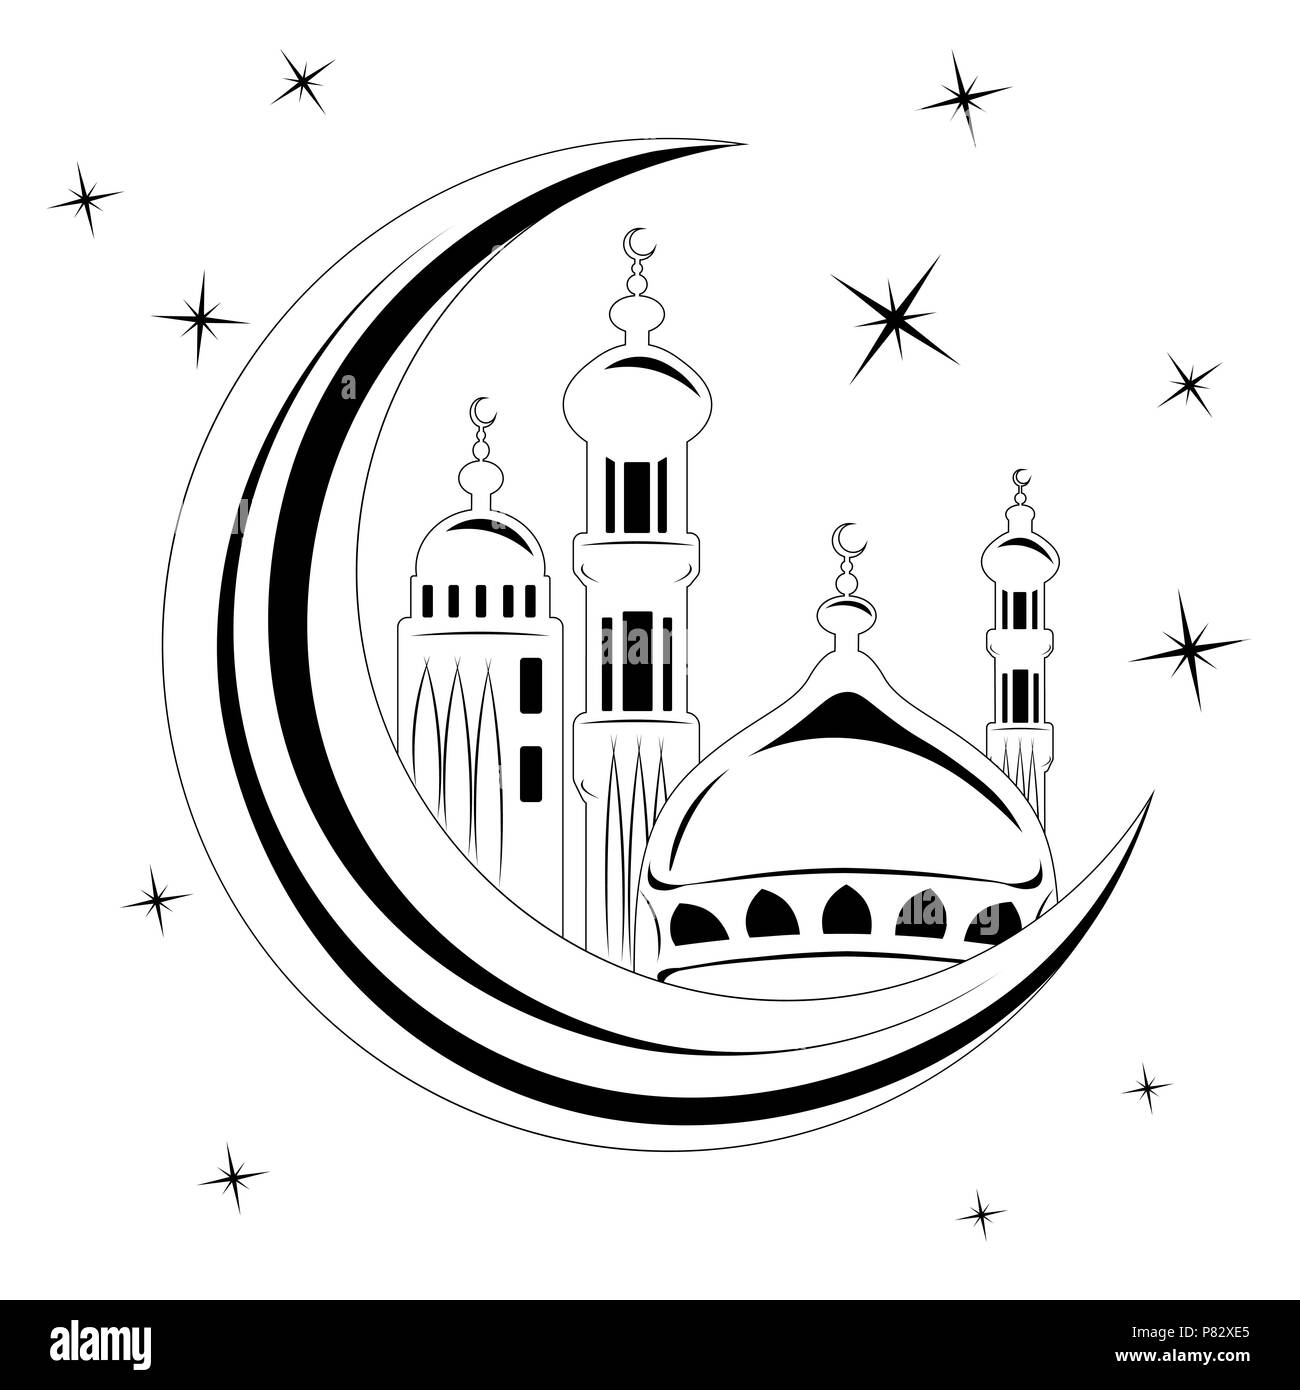 mosque vector ,mosque Icon. mosque Icon Vector. Ramadan Icon Art - stock vector. mosque in moon, month  white - Stock Image